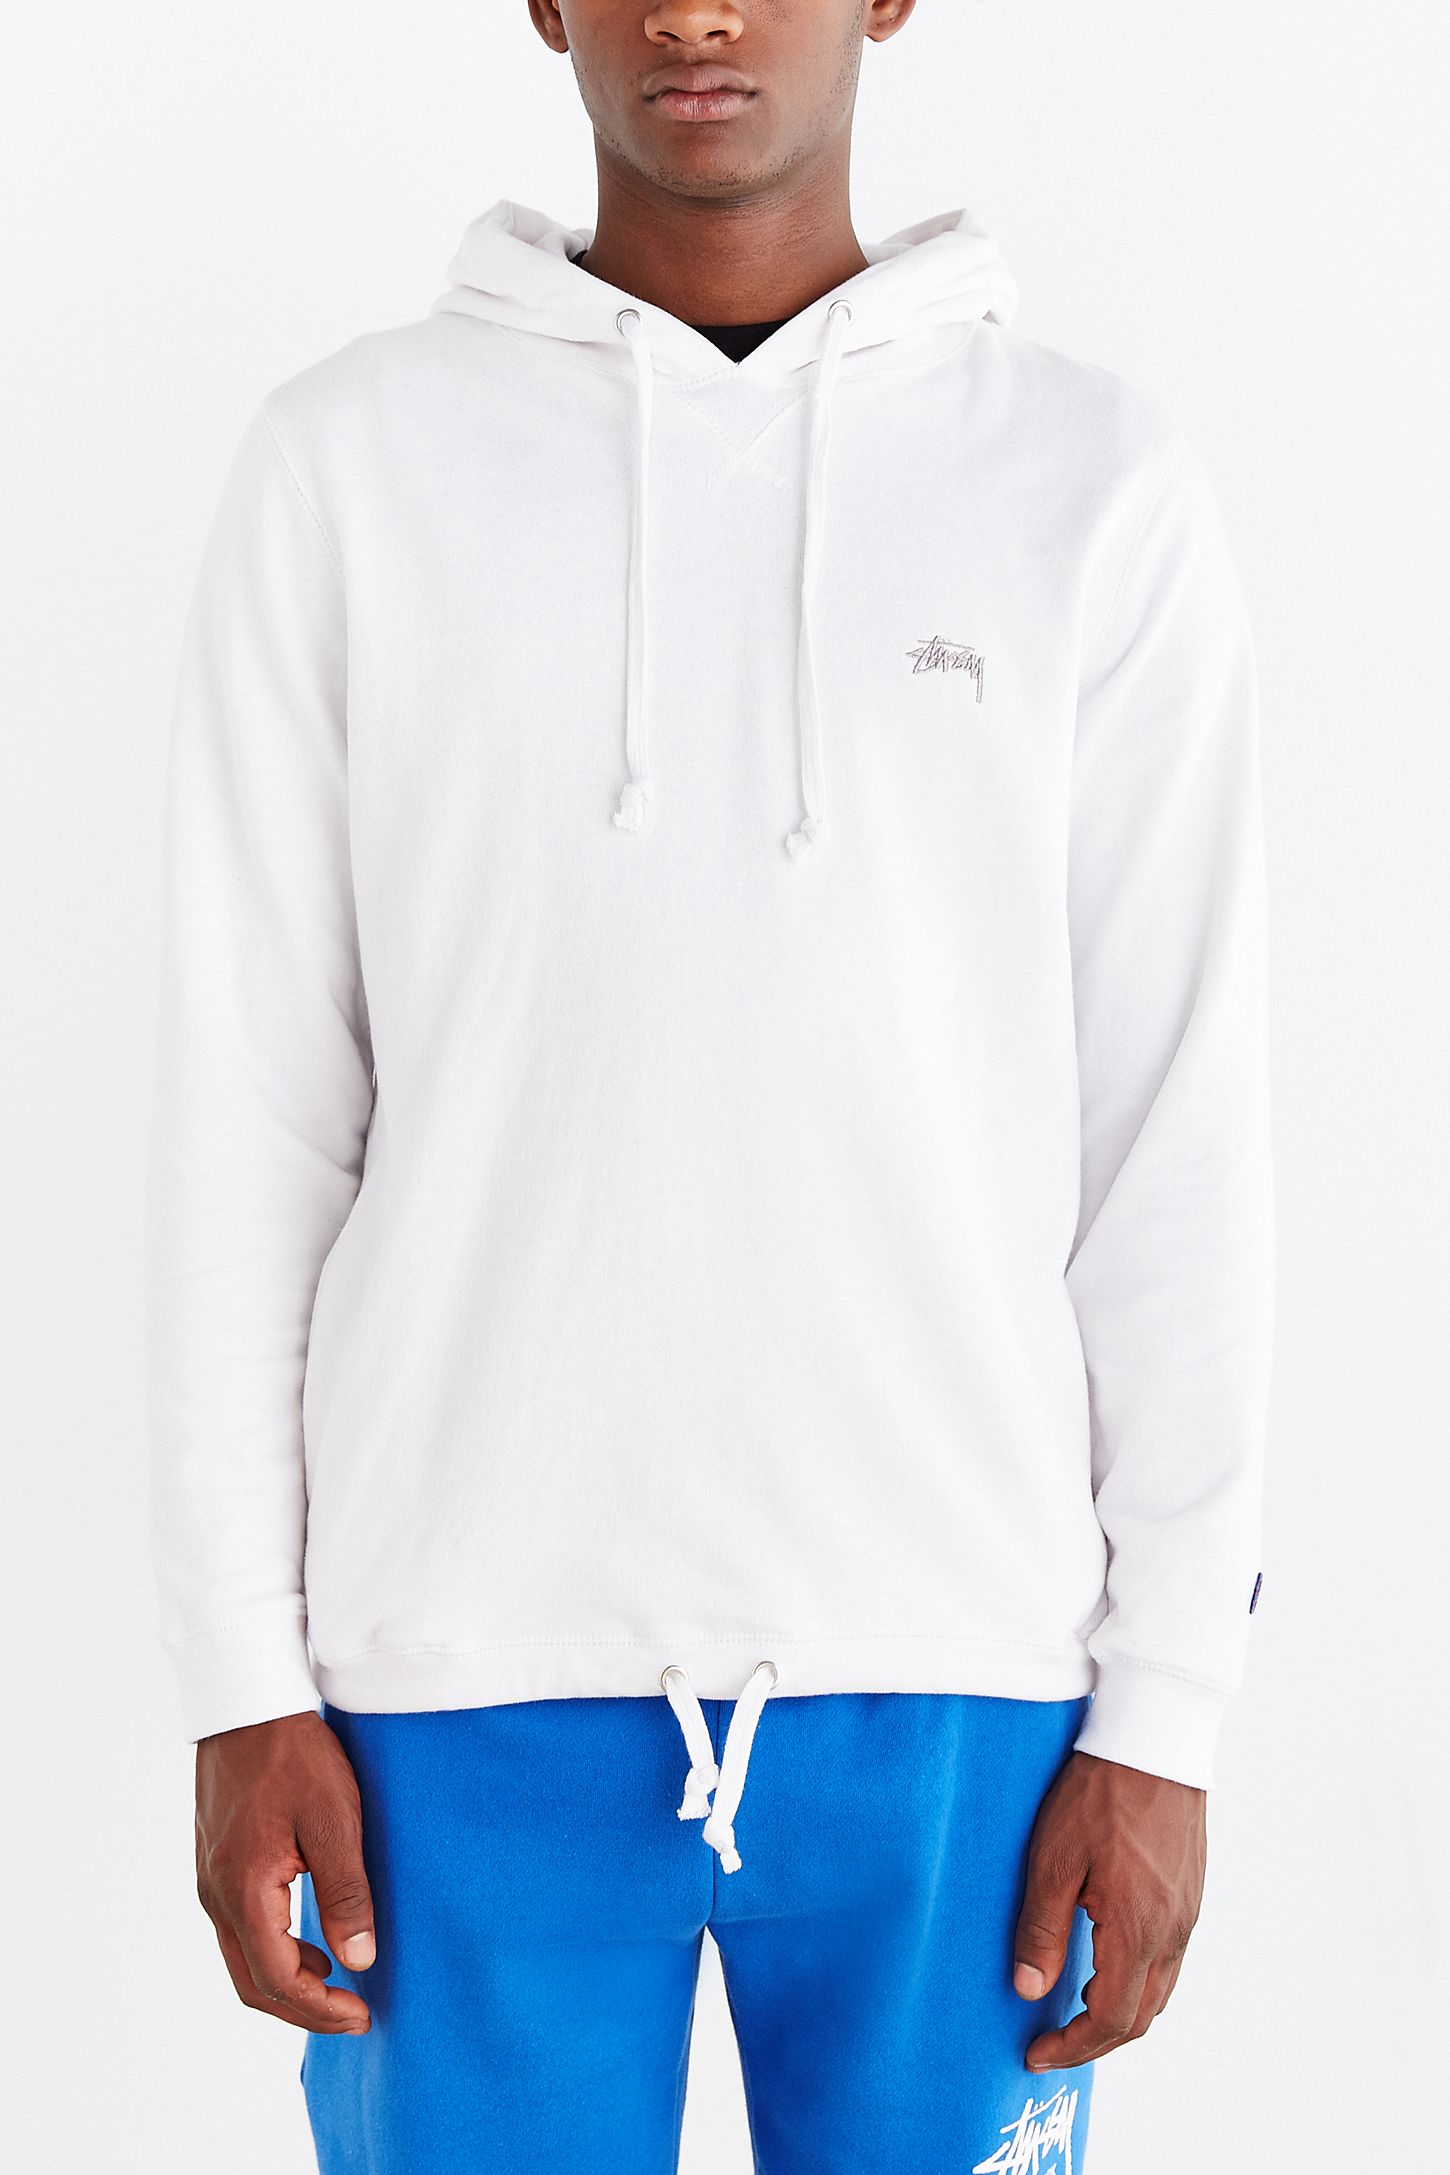 ccc0480f8c Stussy French Terry Logo Pullover Hooded Sweatshirt | Urban ...